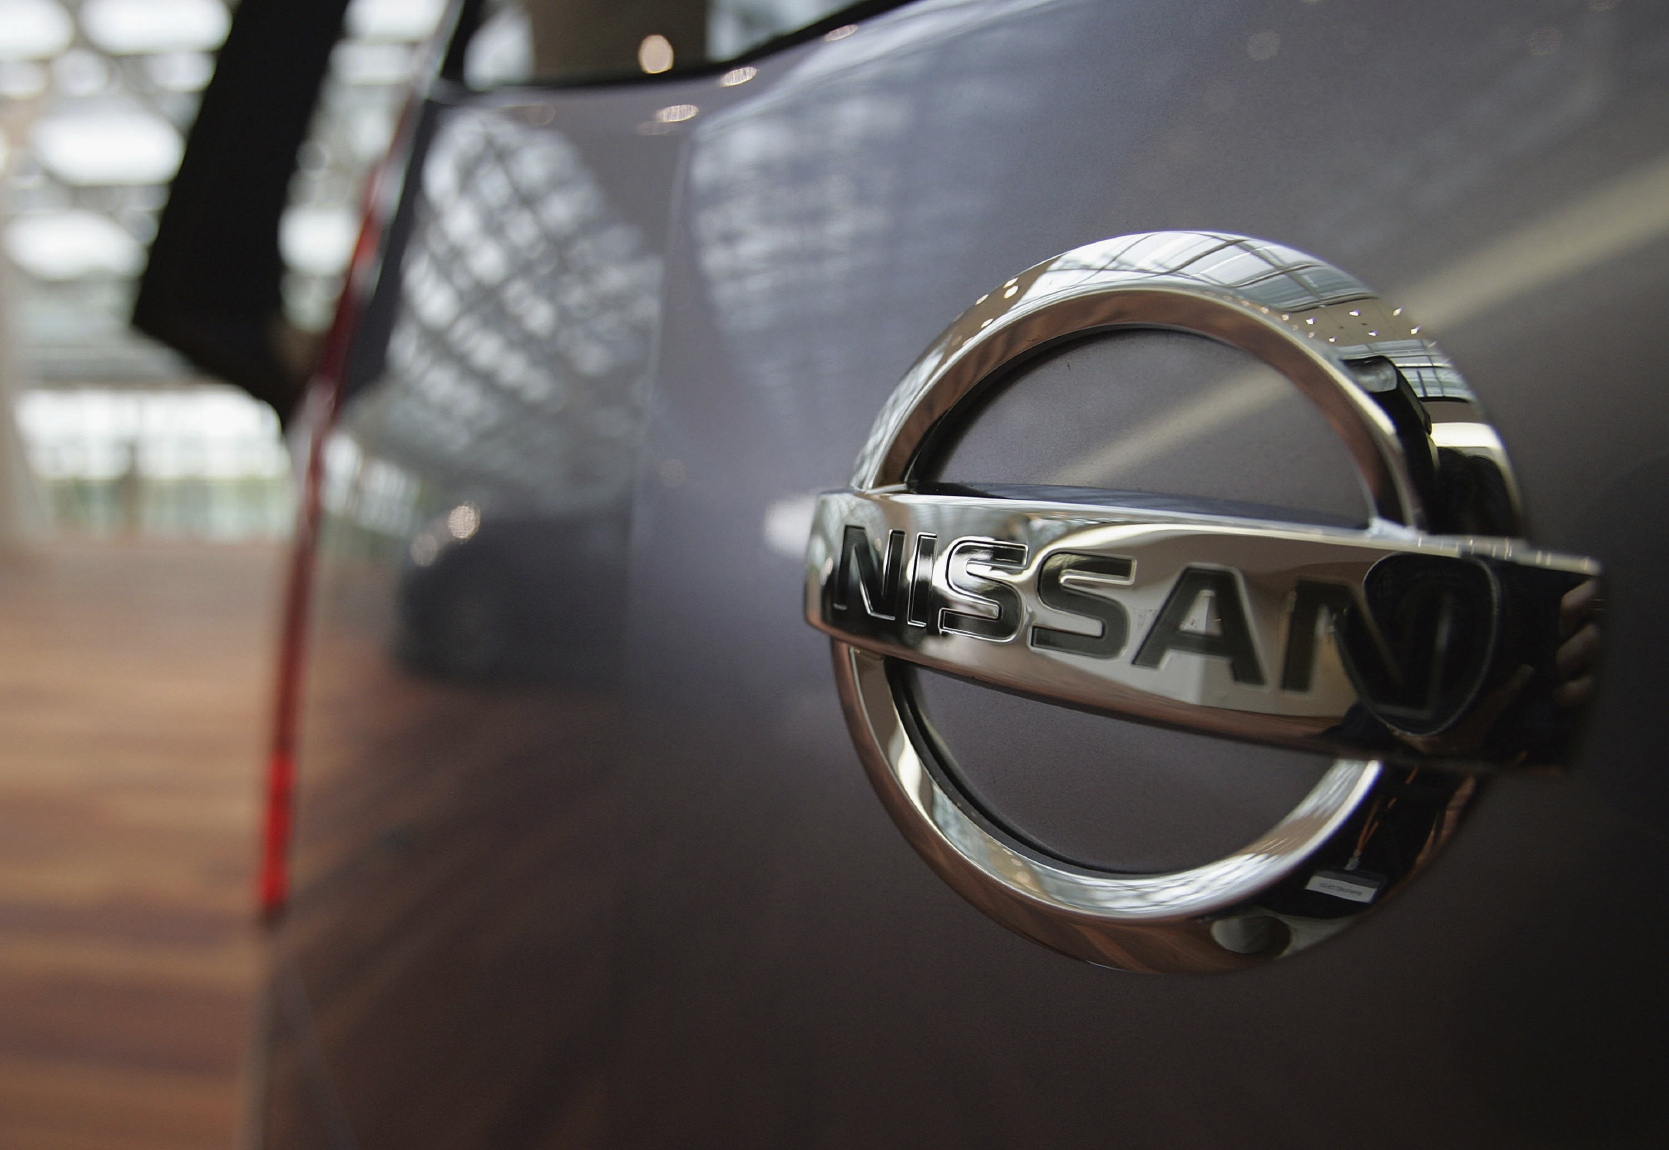 Nissan Records Record Sales in China Despite Political Tensions